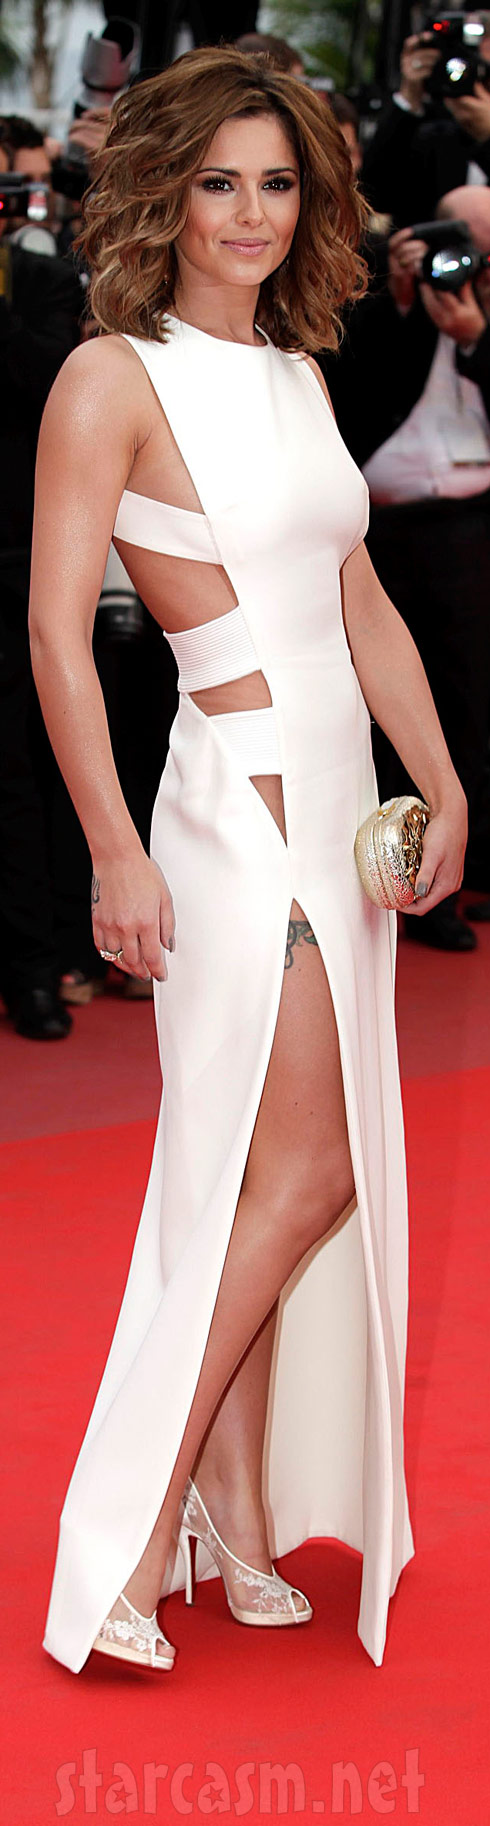 Cheryl Cole's sexy and revealing white dress at Cannes 2010